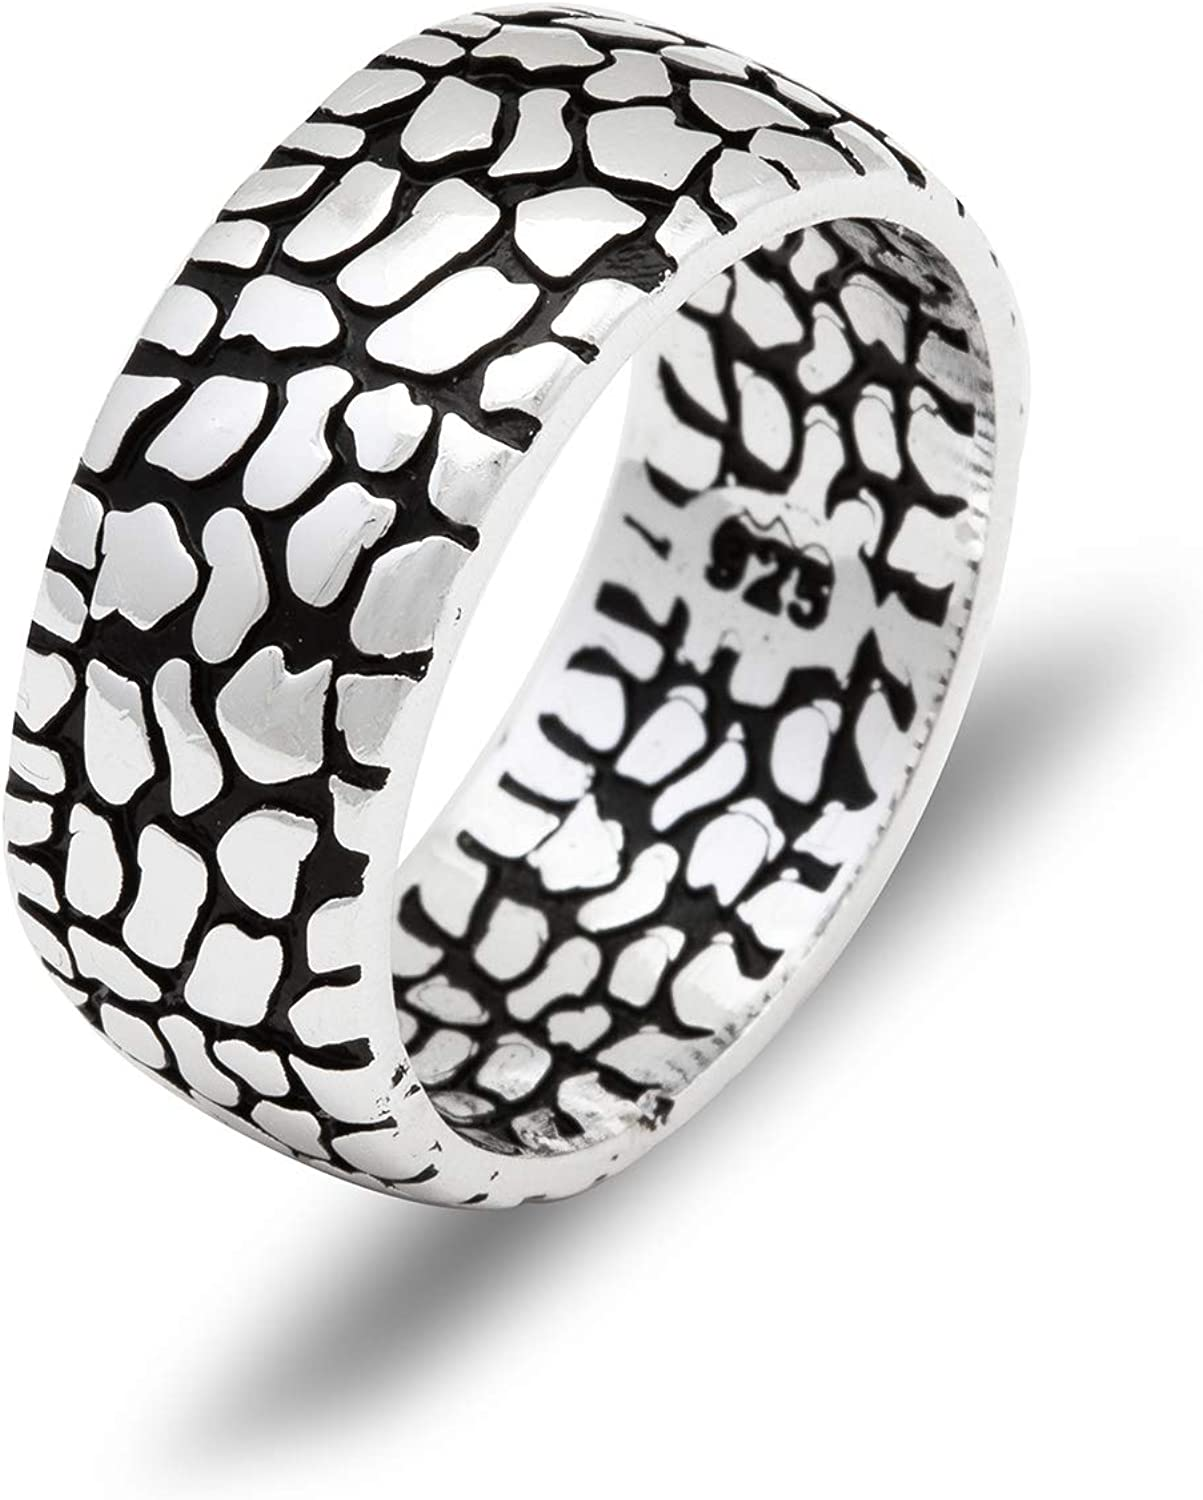 Chicotta Men's Pebble Design Solid Cheap Outlet ☆ Free Shipping Sterling Band Ring Silver